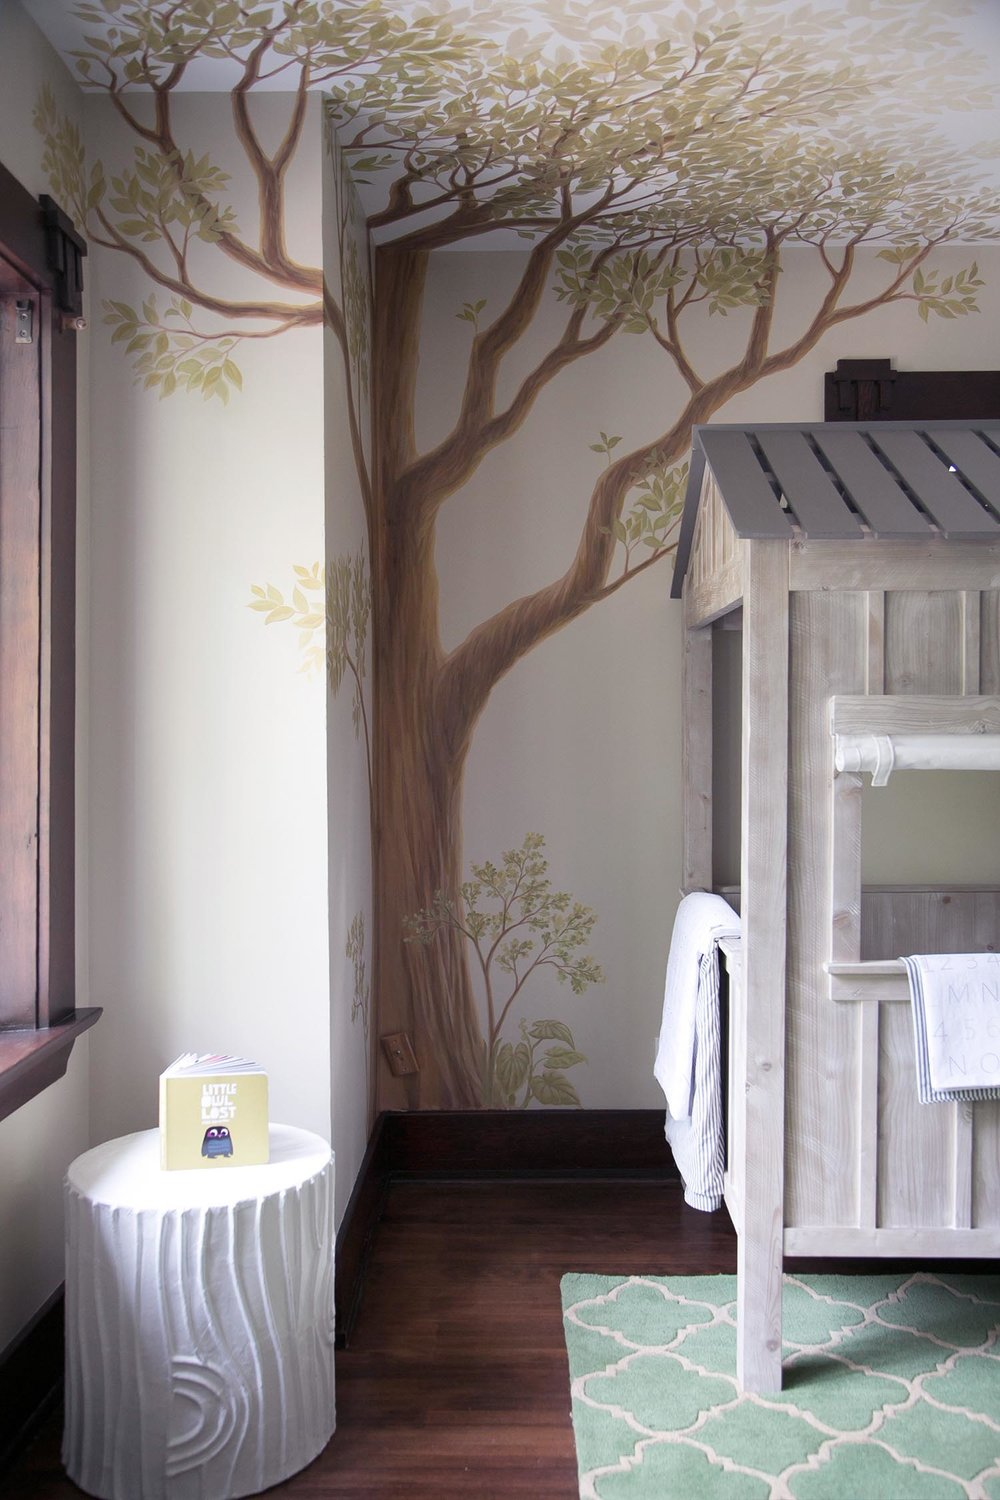 Emil's toddler boy room by Vancouver Interior Designer Melissa Barling